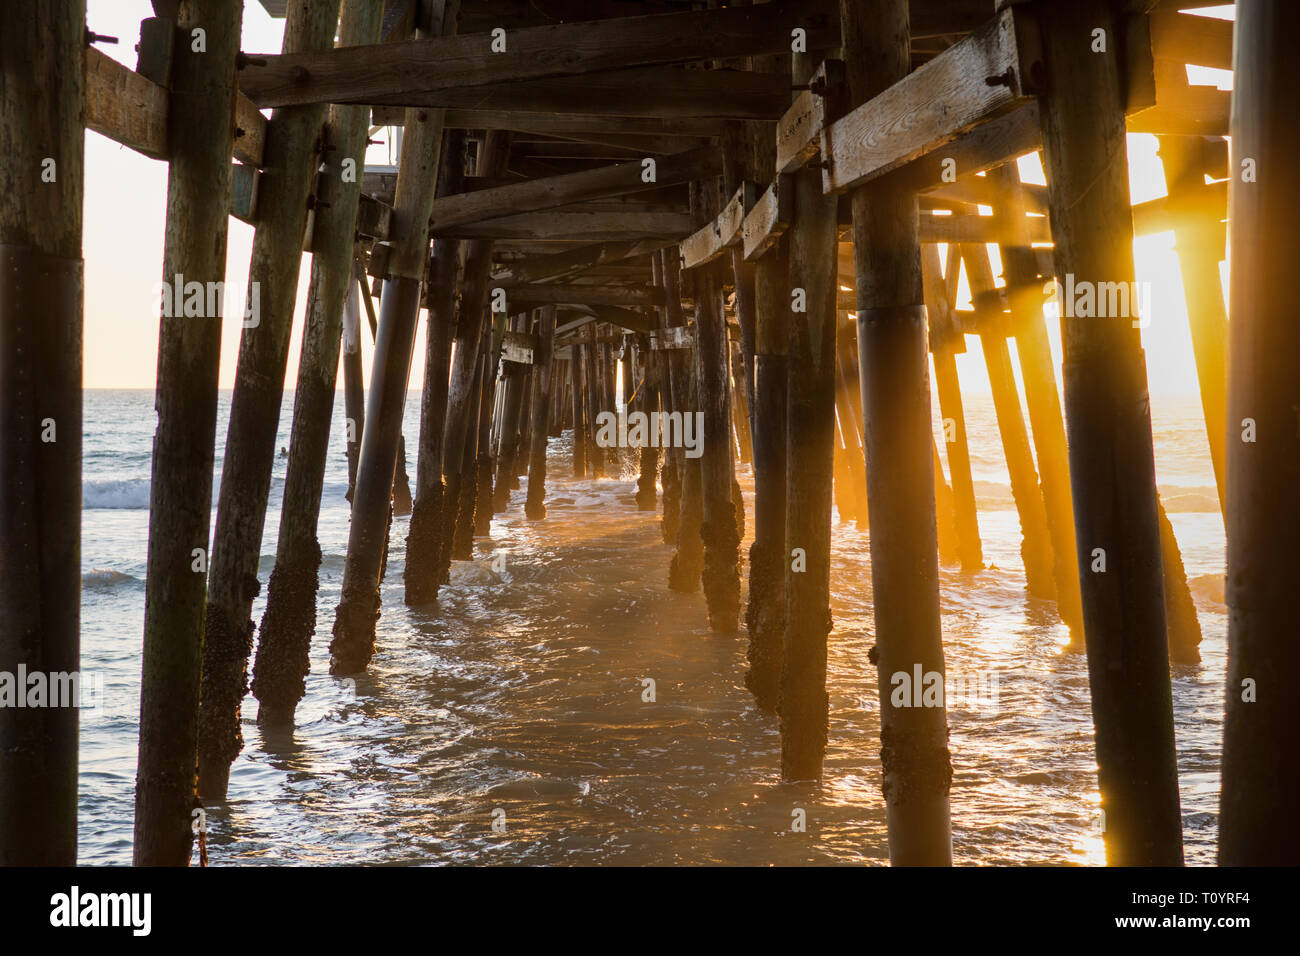 The image shows the  the wooden structure underneath the pier. It was built in 1928 with a length of about 395 meters. Stock Photo